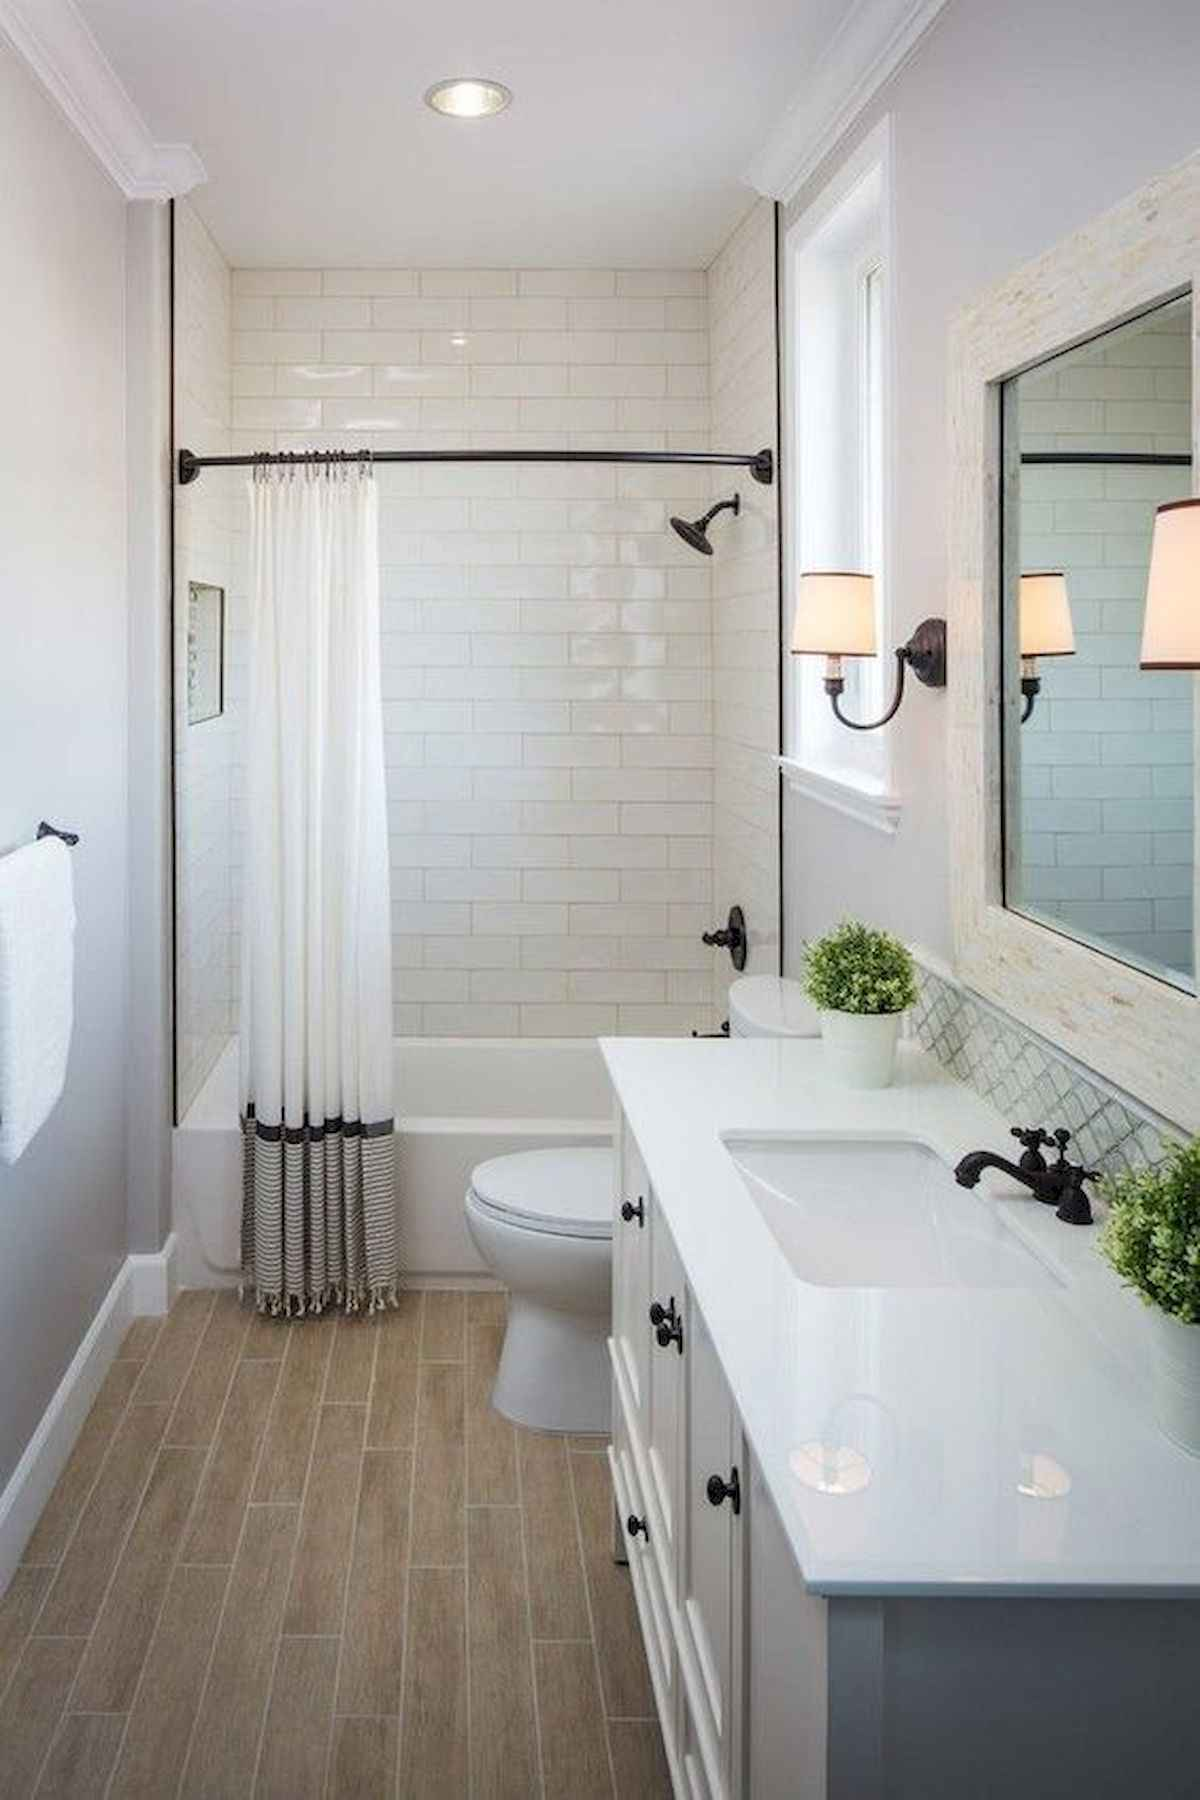 50 small guest bathroom ideas decorations and remodel (42 ...